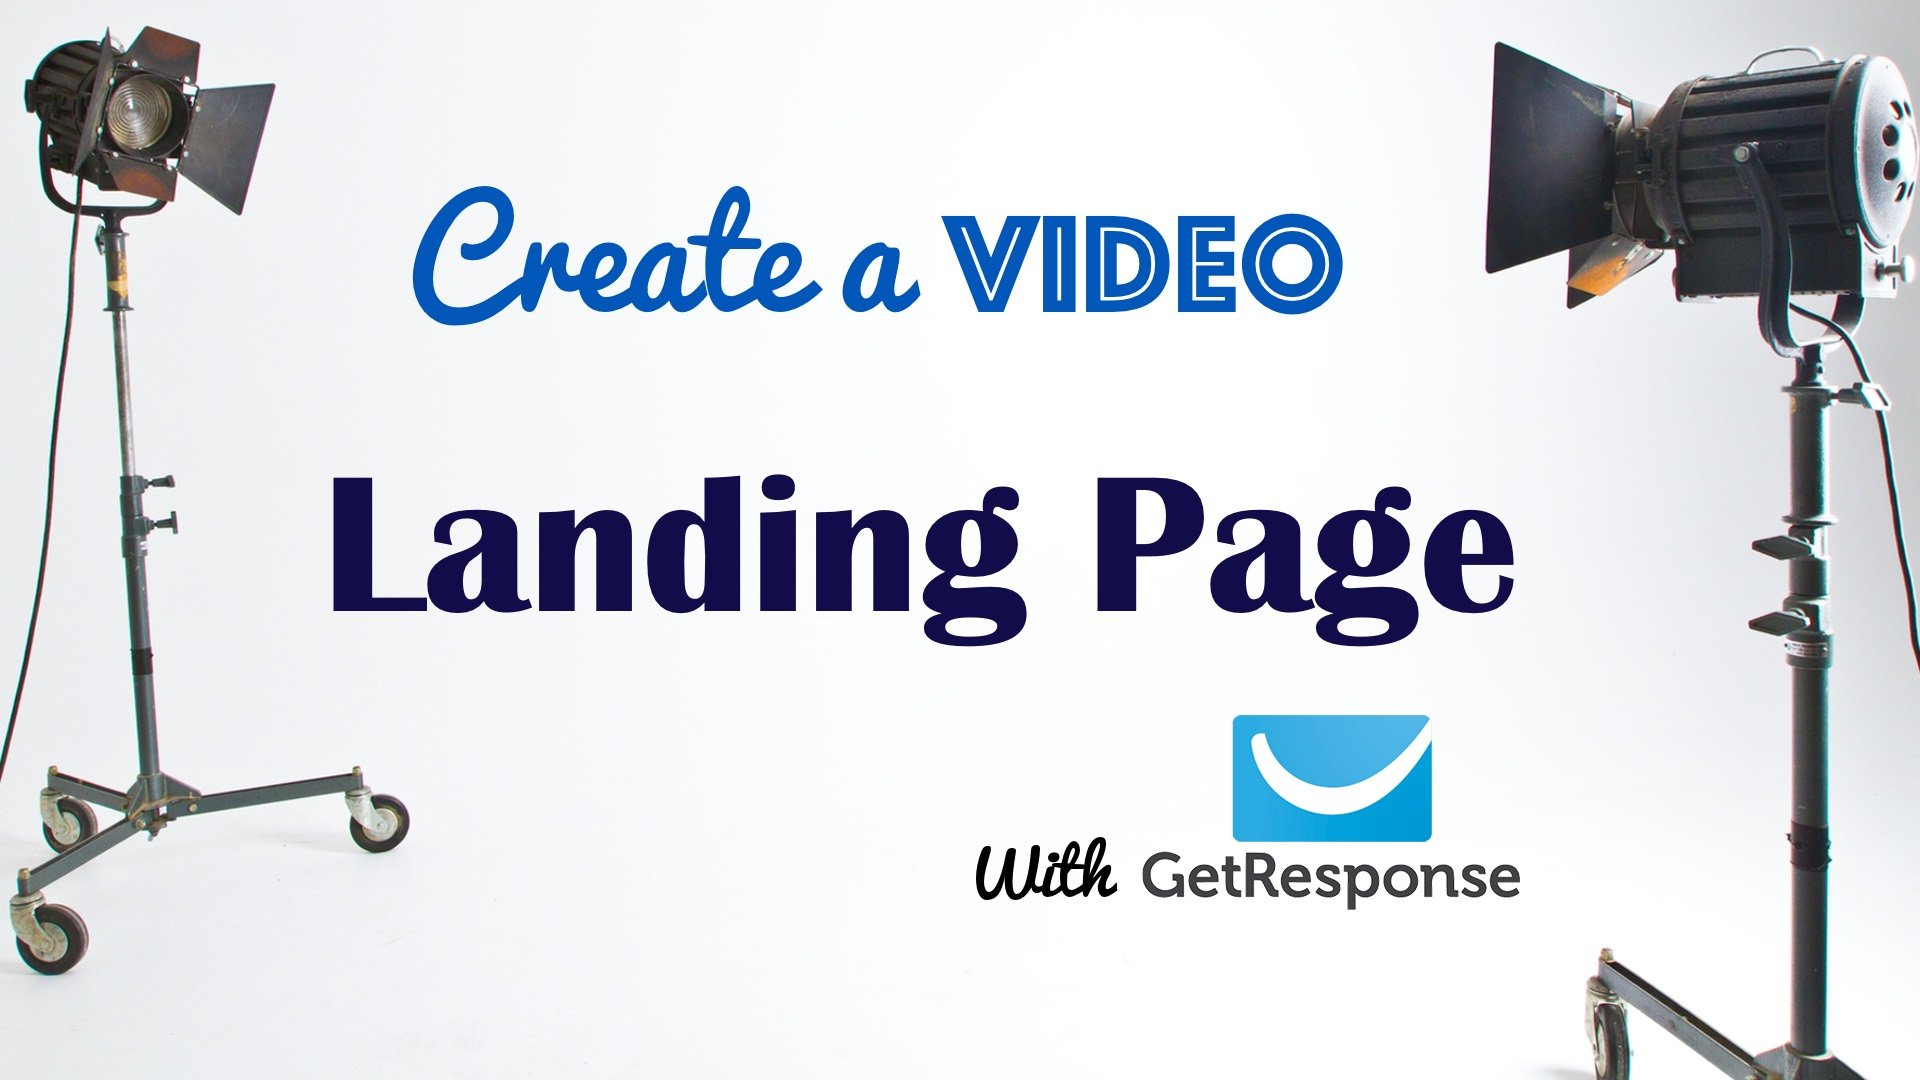 10X Your Conversion With a Video Landing Page!